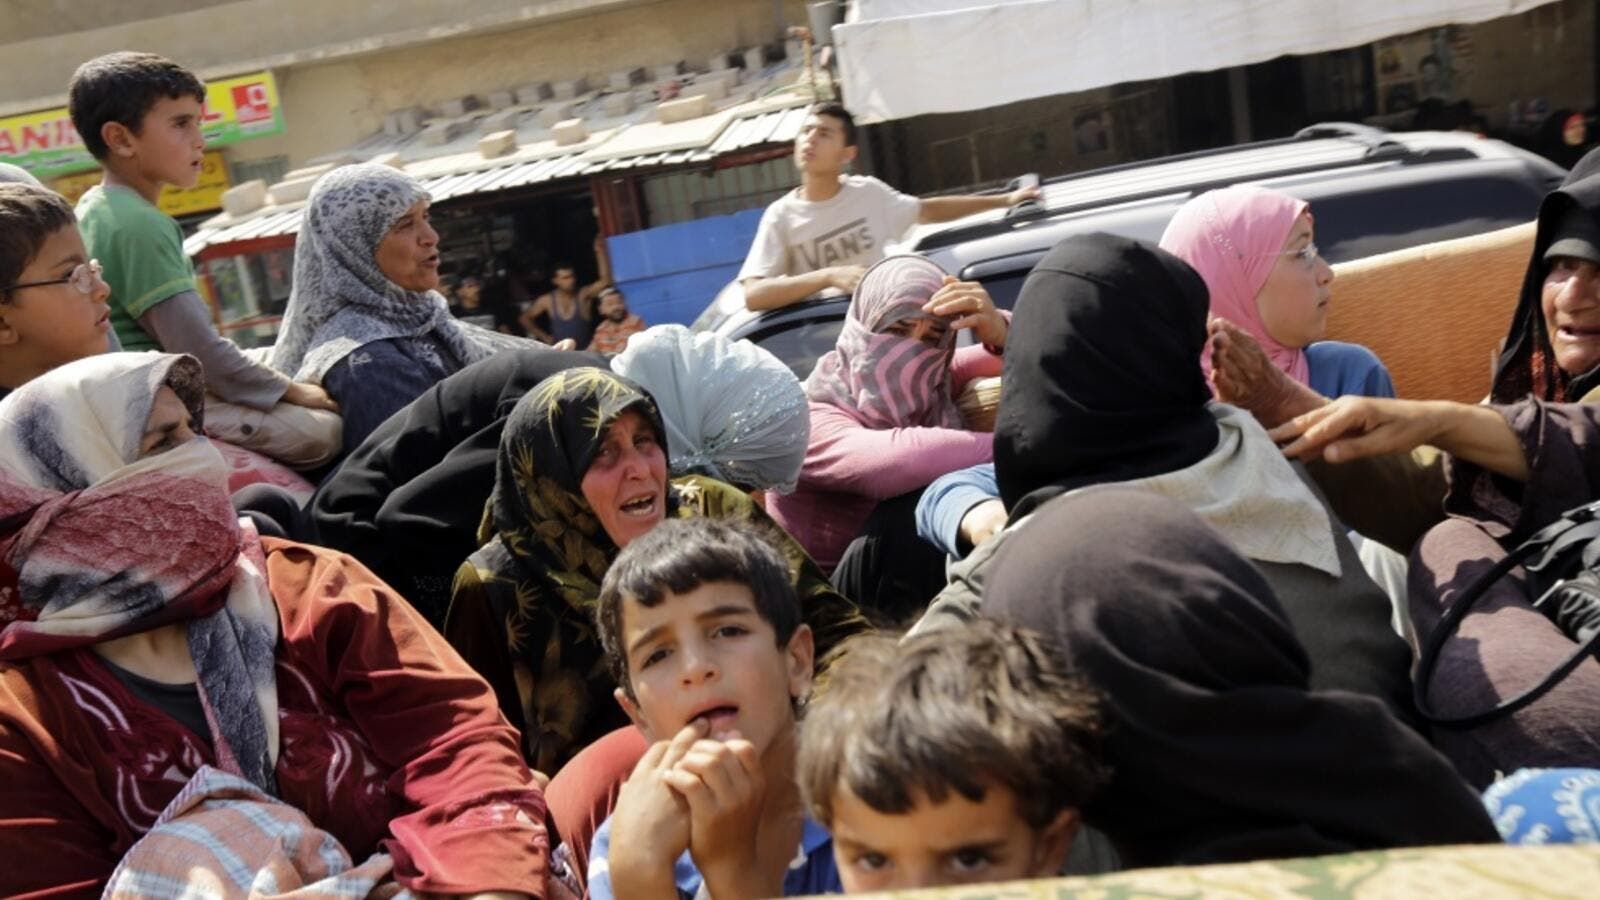 2,000 Syrian refugees reportedly stranded in Lebanon mountains. (AFP)